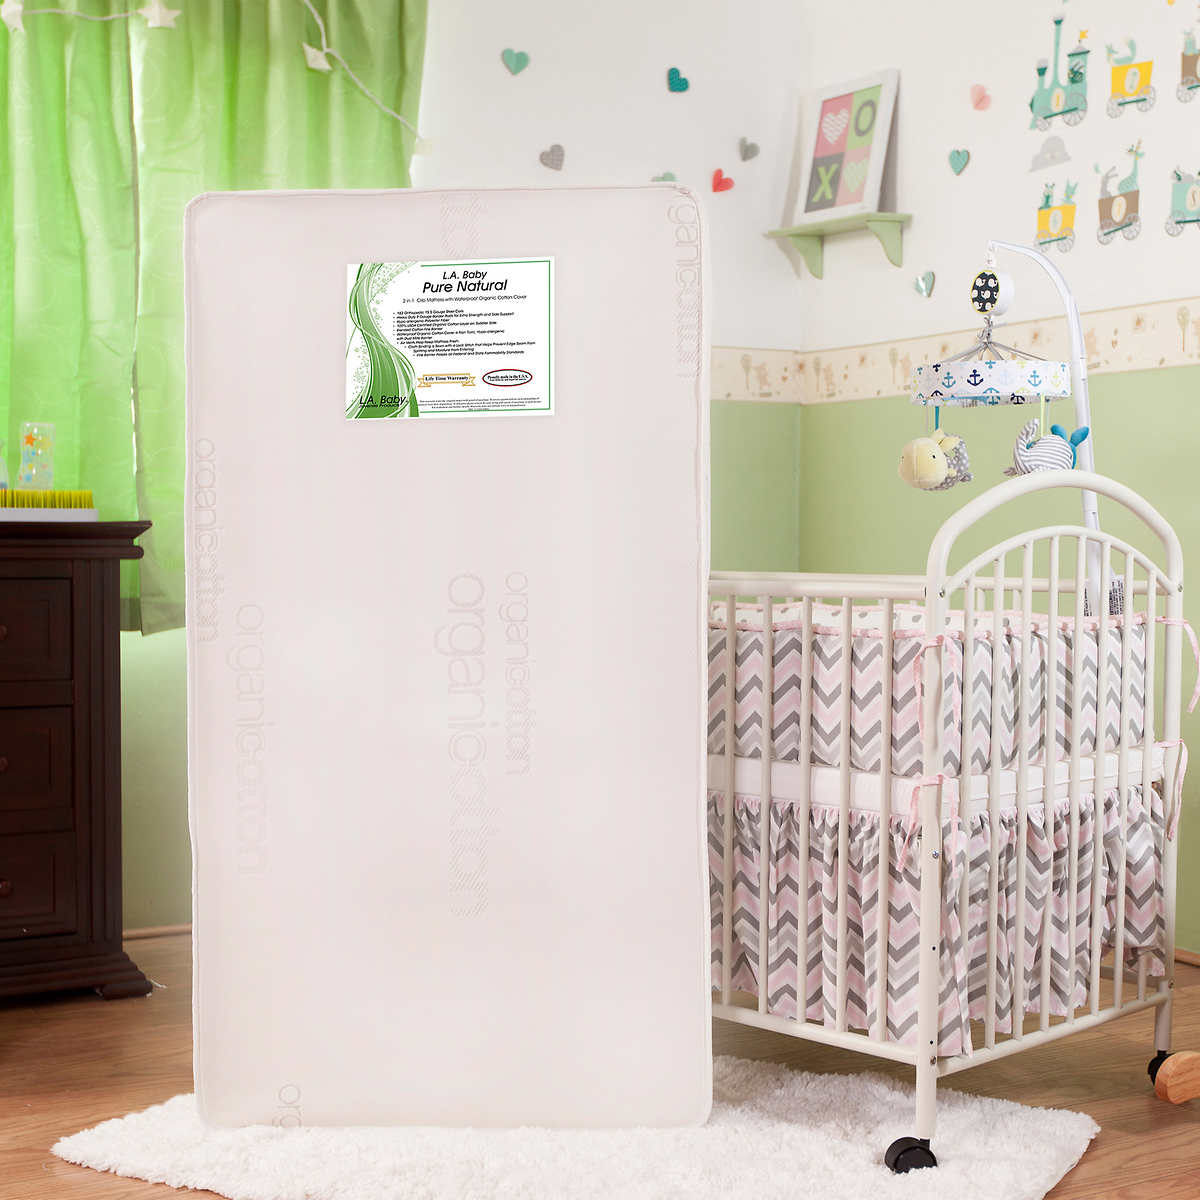 L. A. BABY Pure Natural 2-in-1 Crib Mattress